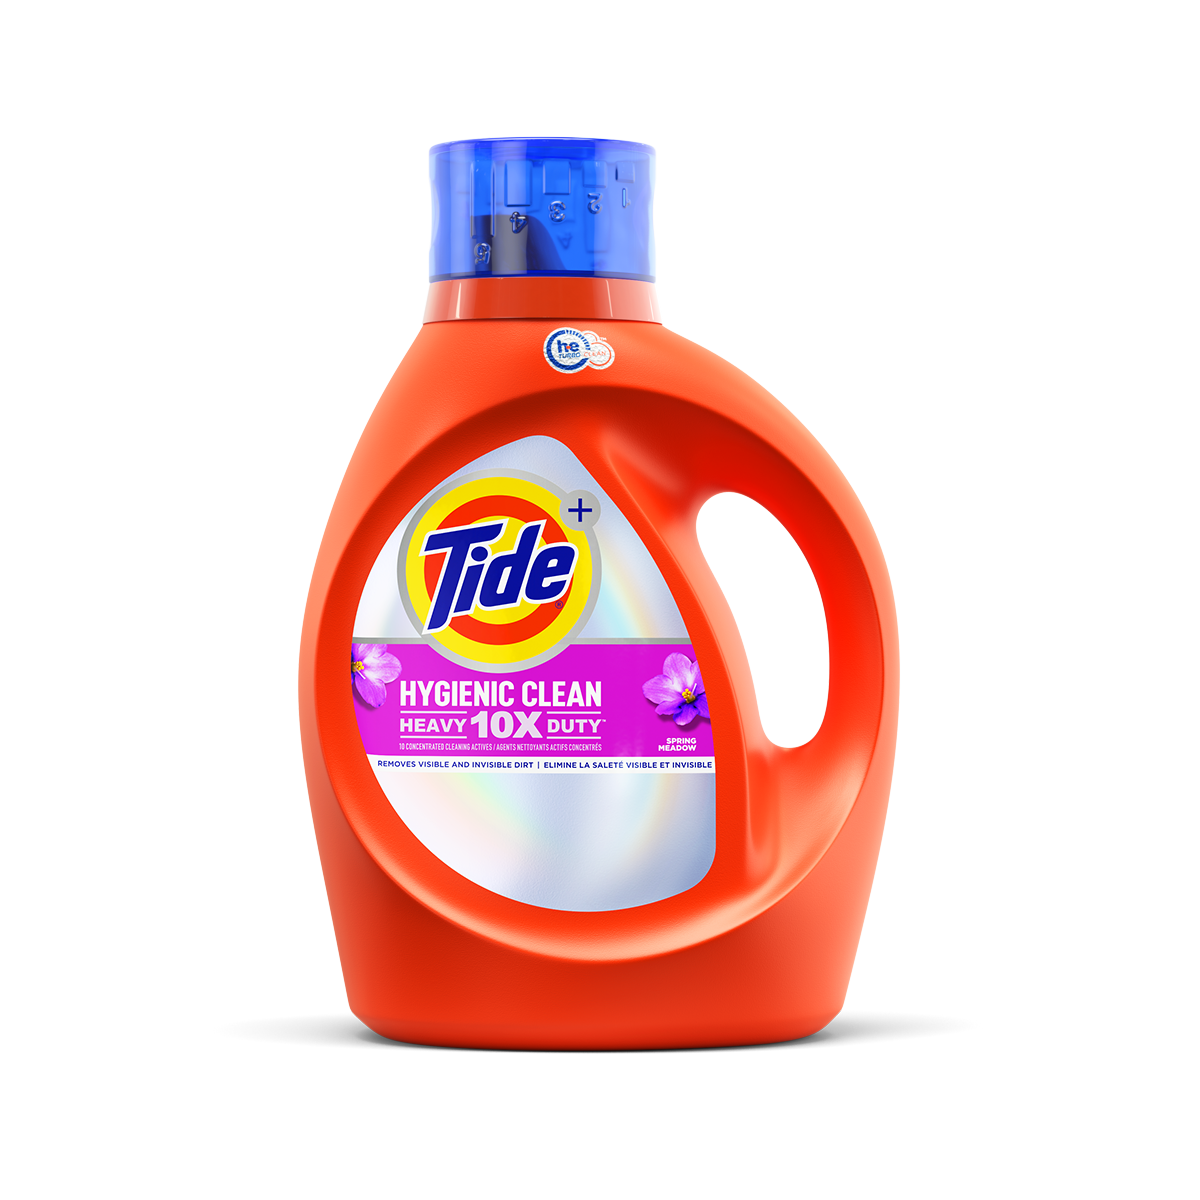 Tide Hygienic Clean Heavy Duty 10X Liquid Spring Meadow Scent